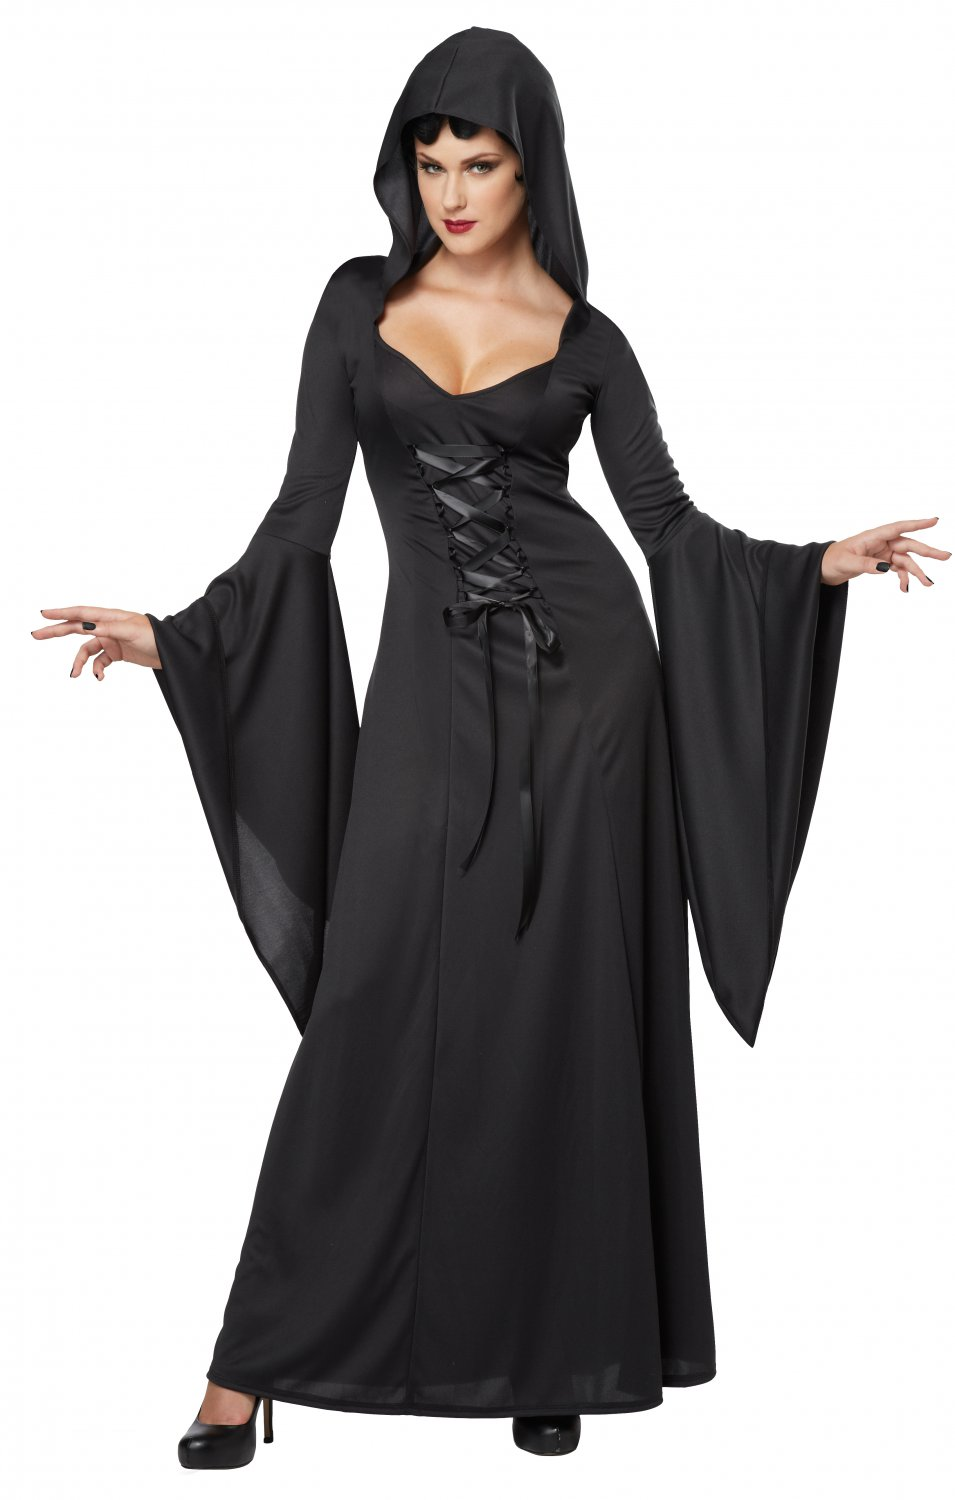 Deluxe Hooded Robe Adult Costume Size: X-Small #01338